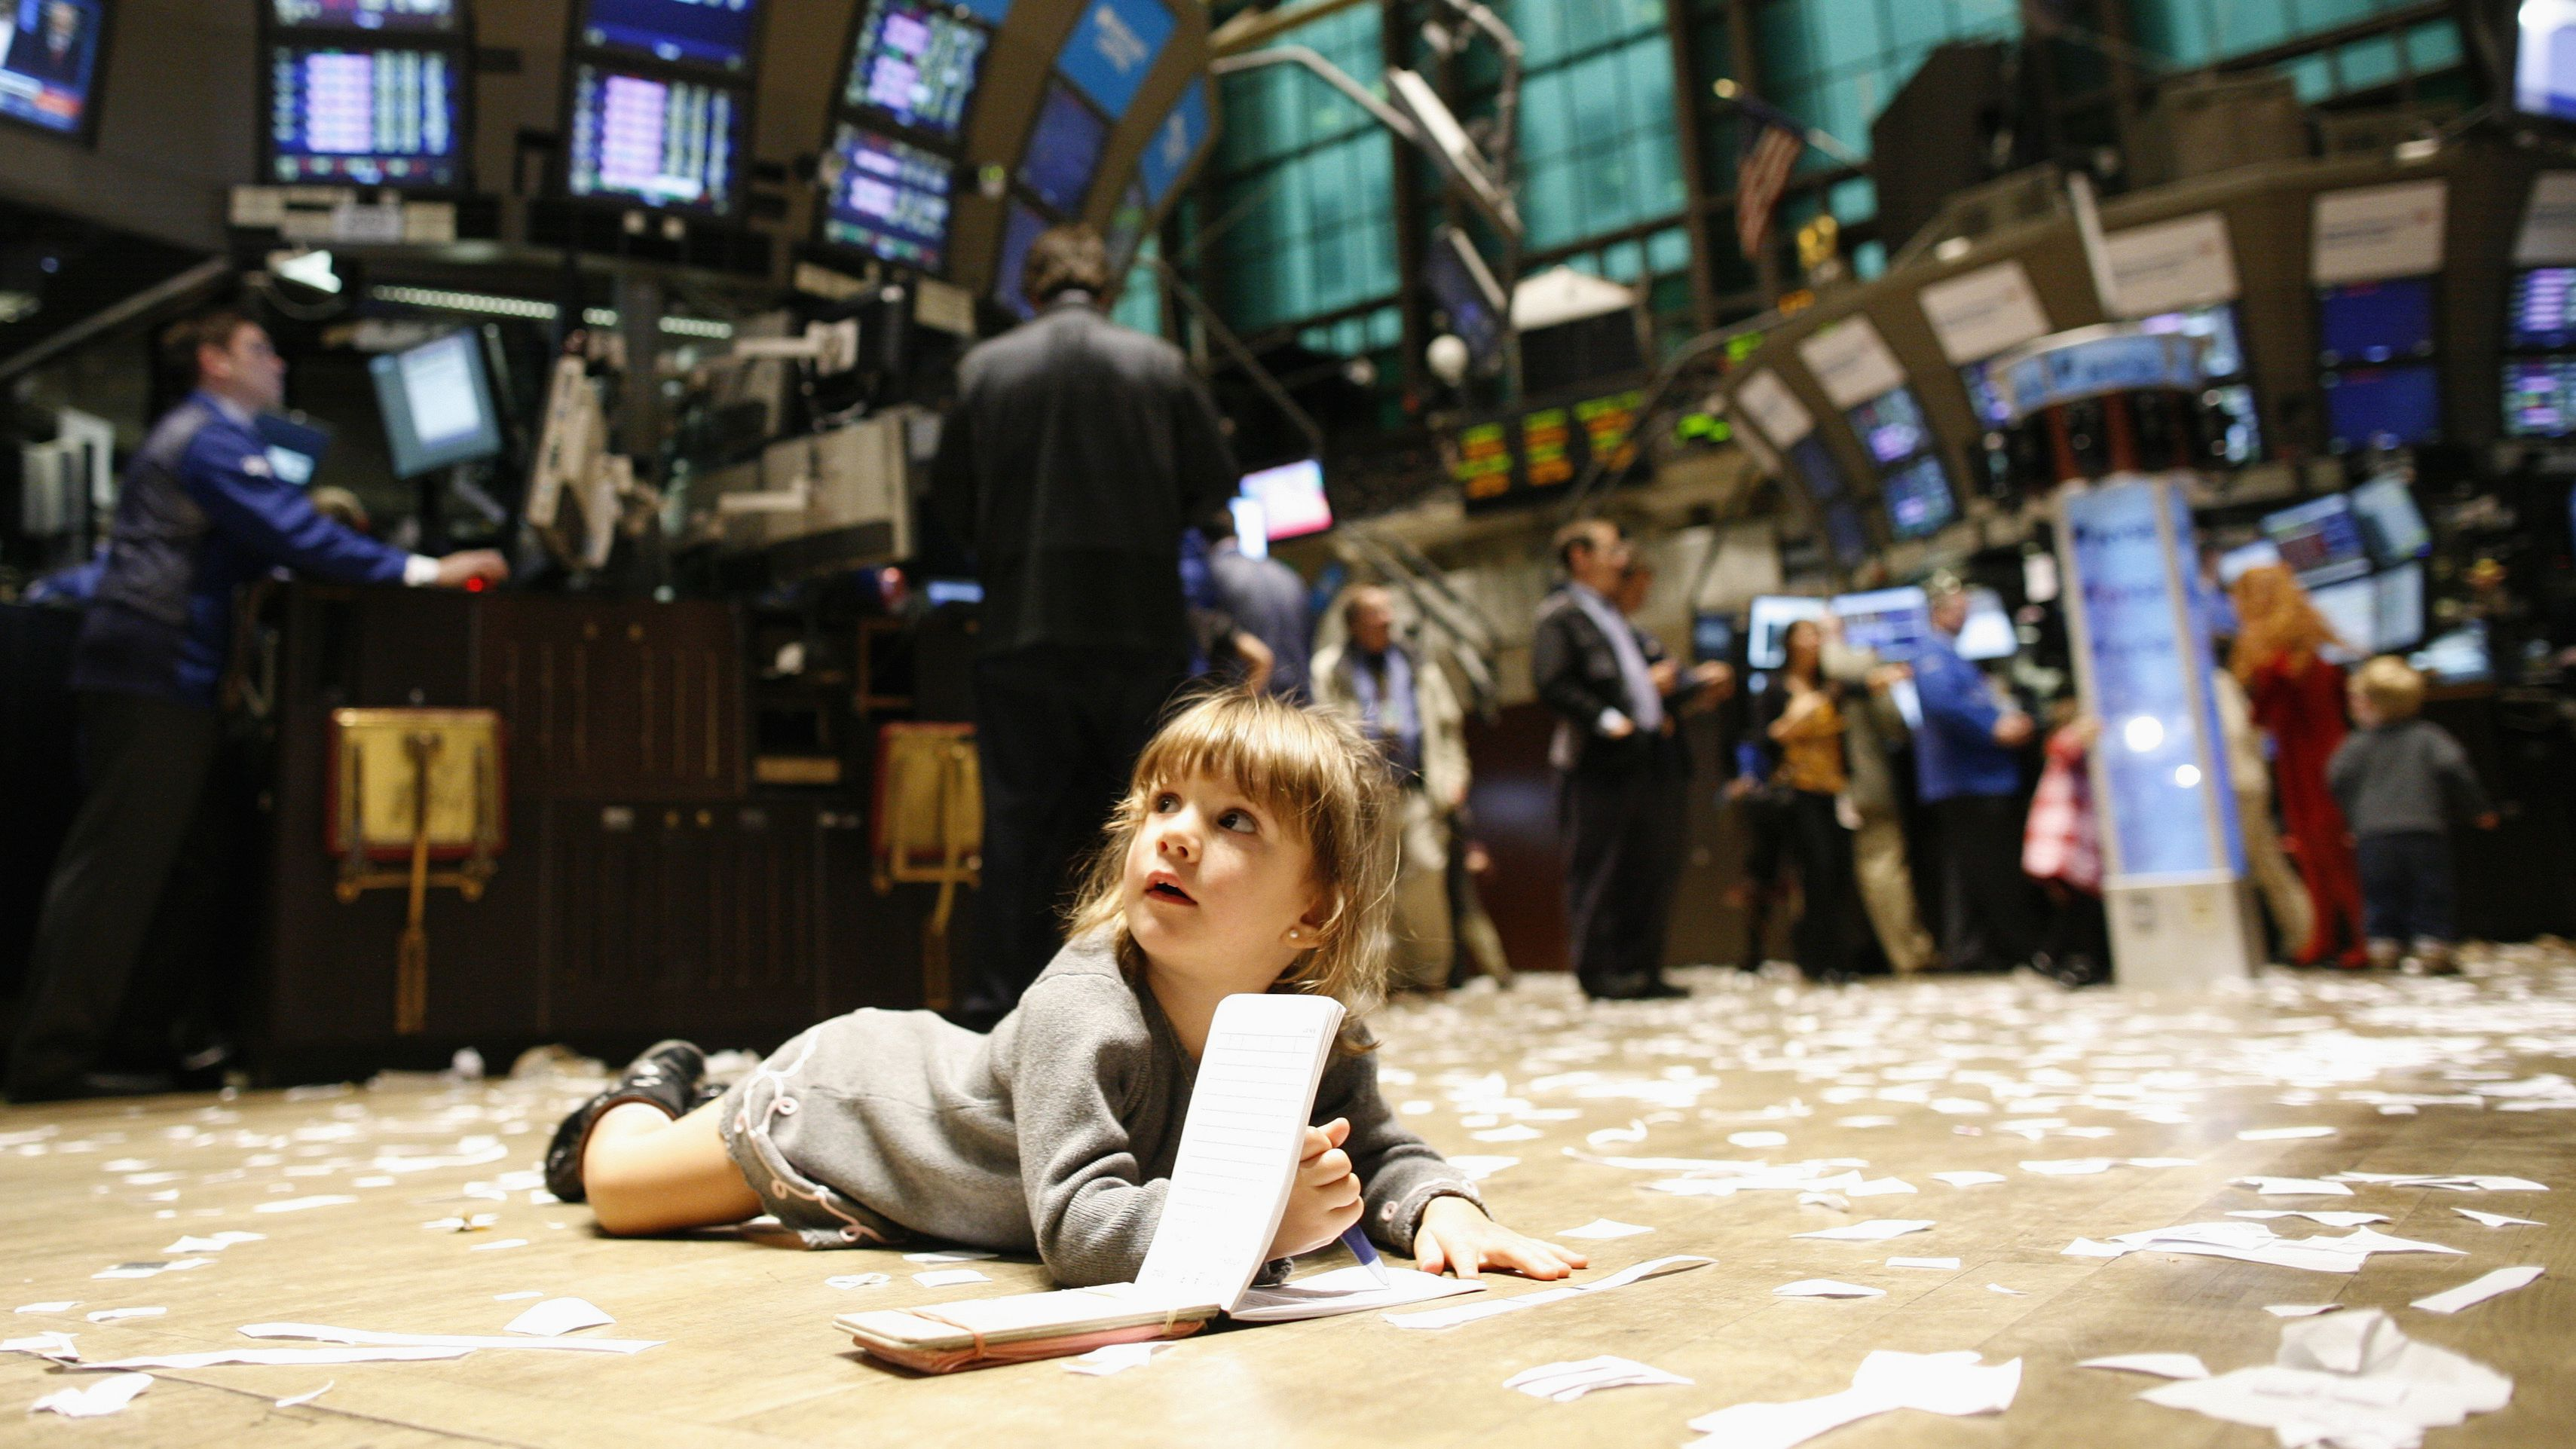 Gabriella Liloia lies on the trading floor, during kid's day at the New York Stock Exchange November 27, 2009. The New York Stock Exchange allowed children on the floor during the shortened trading day. REUTERS/Brendan McDermid